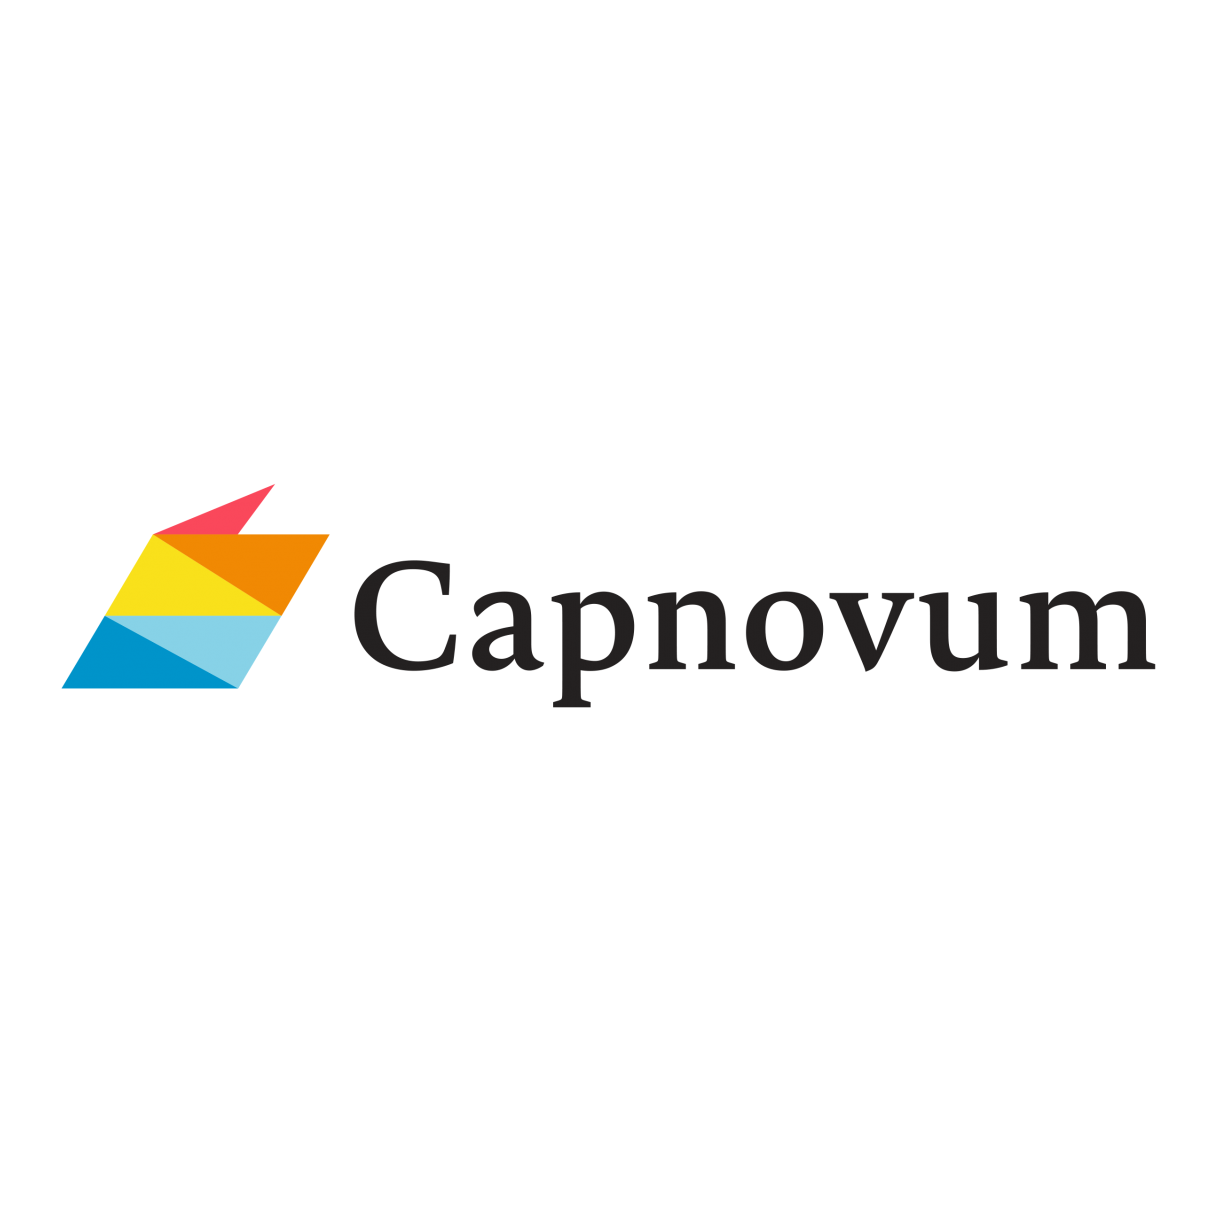 Capnovum - www.capnovum.com@capnovumA RegTech startup challenging global consulting through use of artificial intelligence and automation. Capnovum's platform helps clients discover regulations applicable to their business model and keep up-to-date on regulatory news.